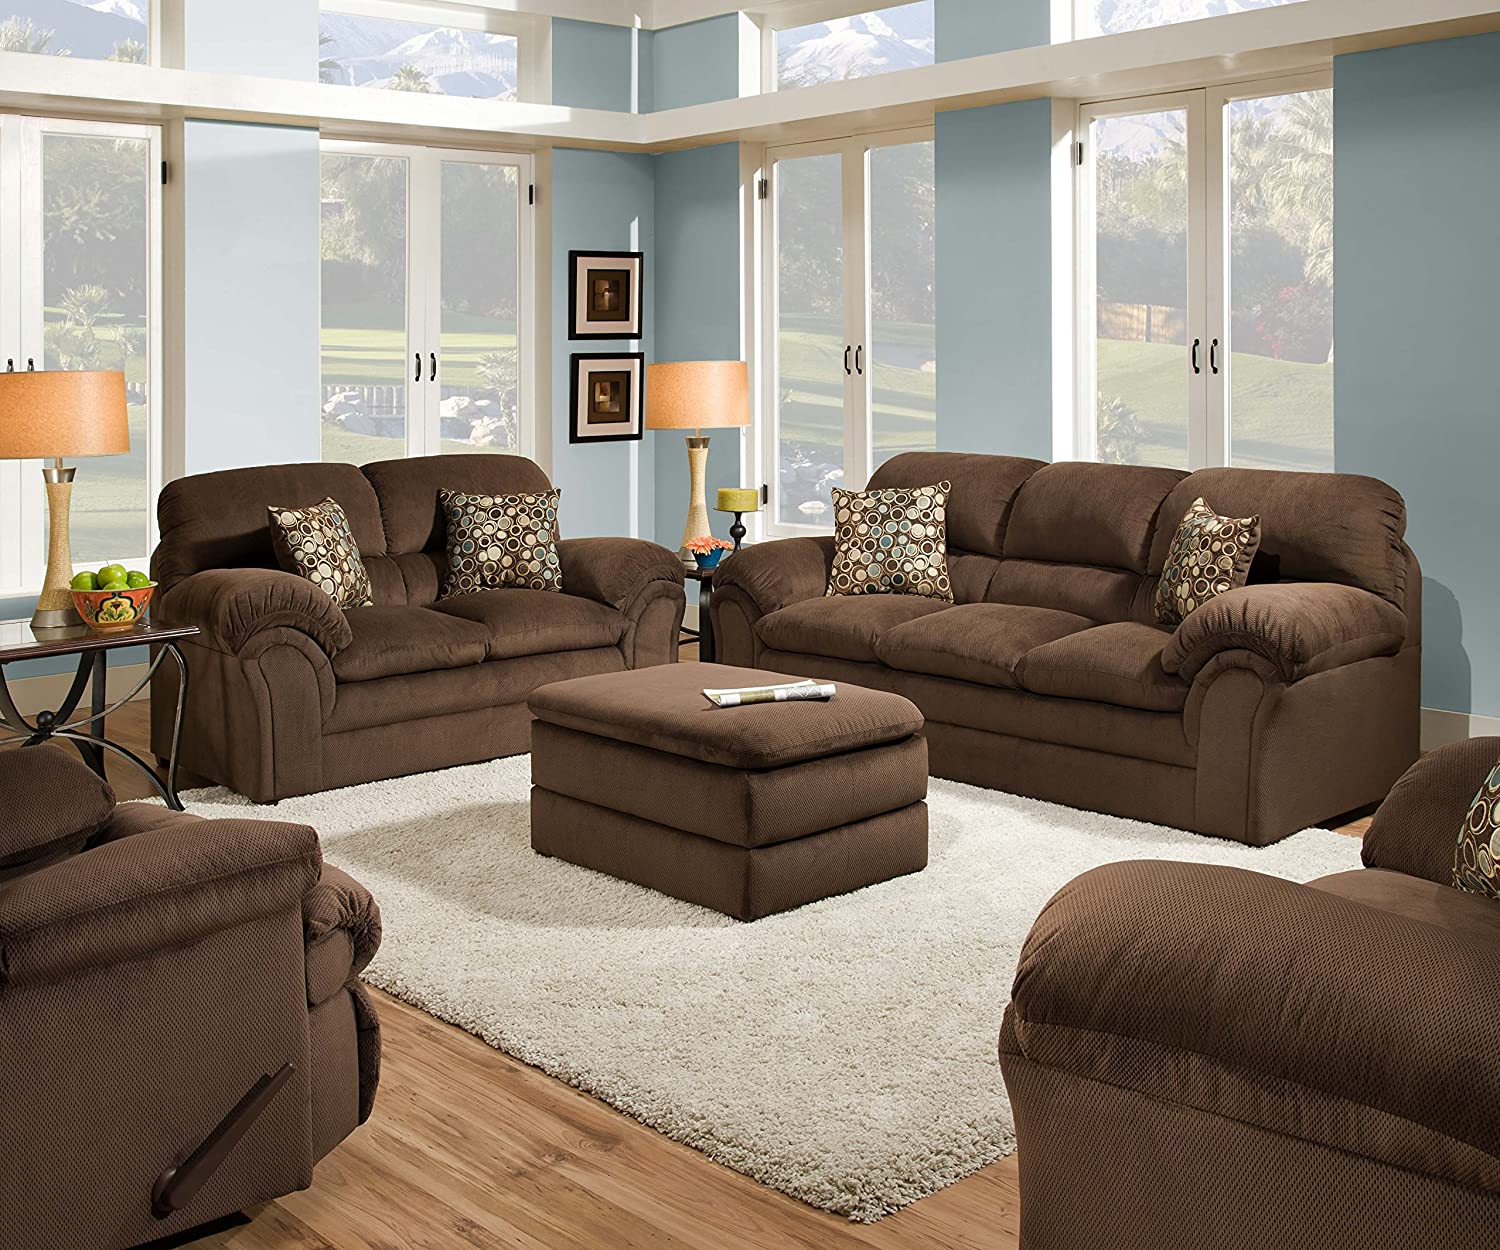 Simmons United Furniture Reviews Simmons Ottoman Simmons Sectional Biglots Sectional Simmons